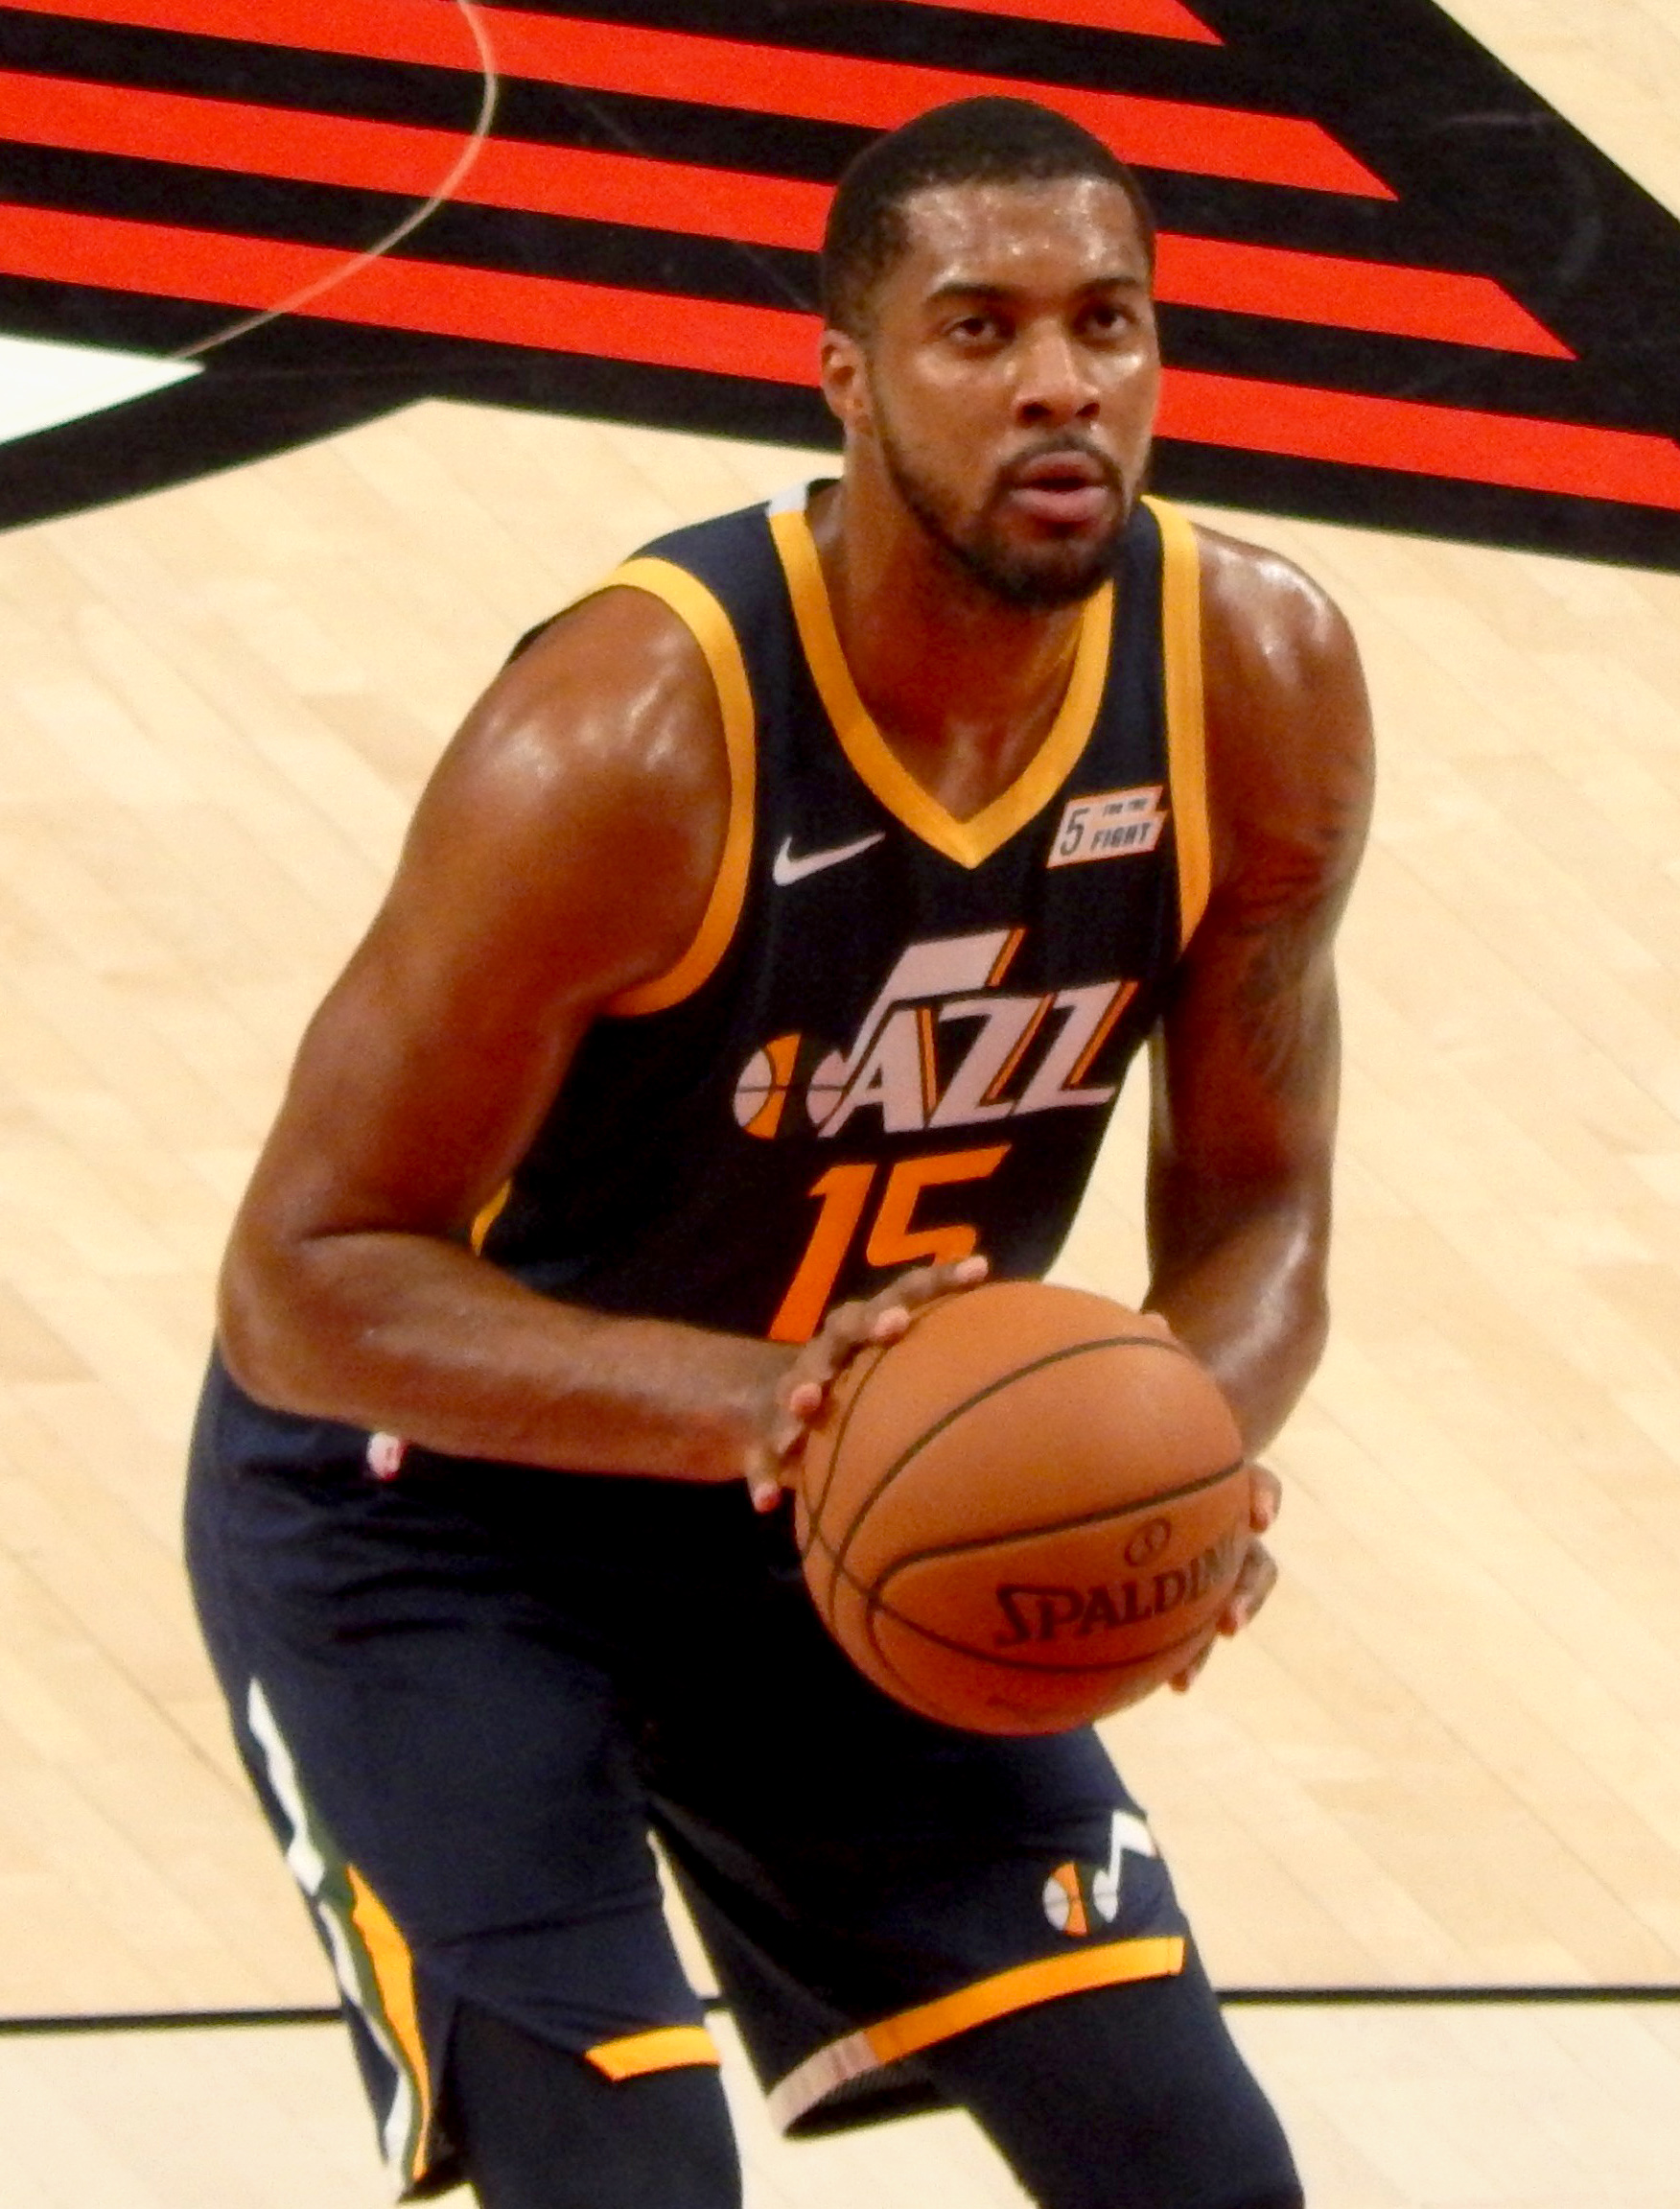 fc376df434b Derrick Favors - Wikipedia